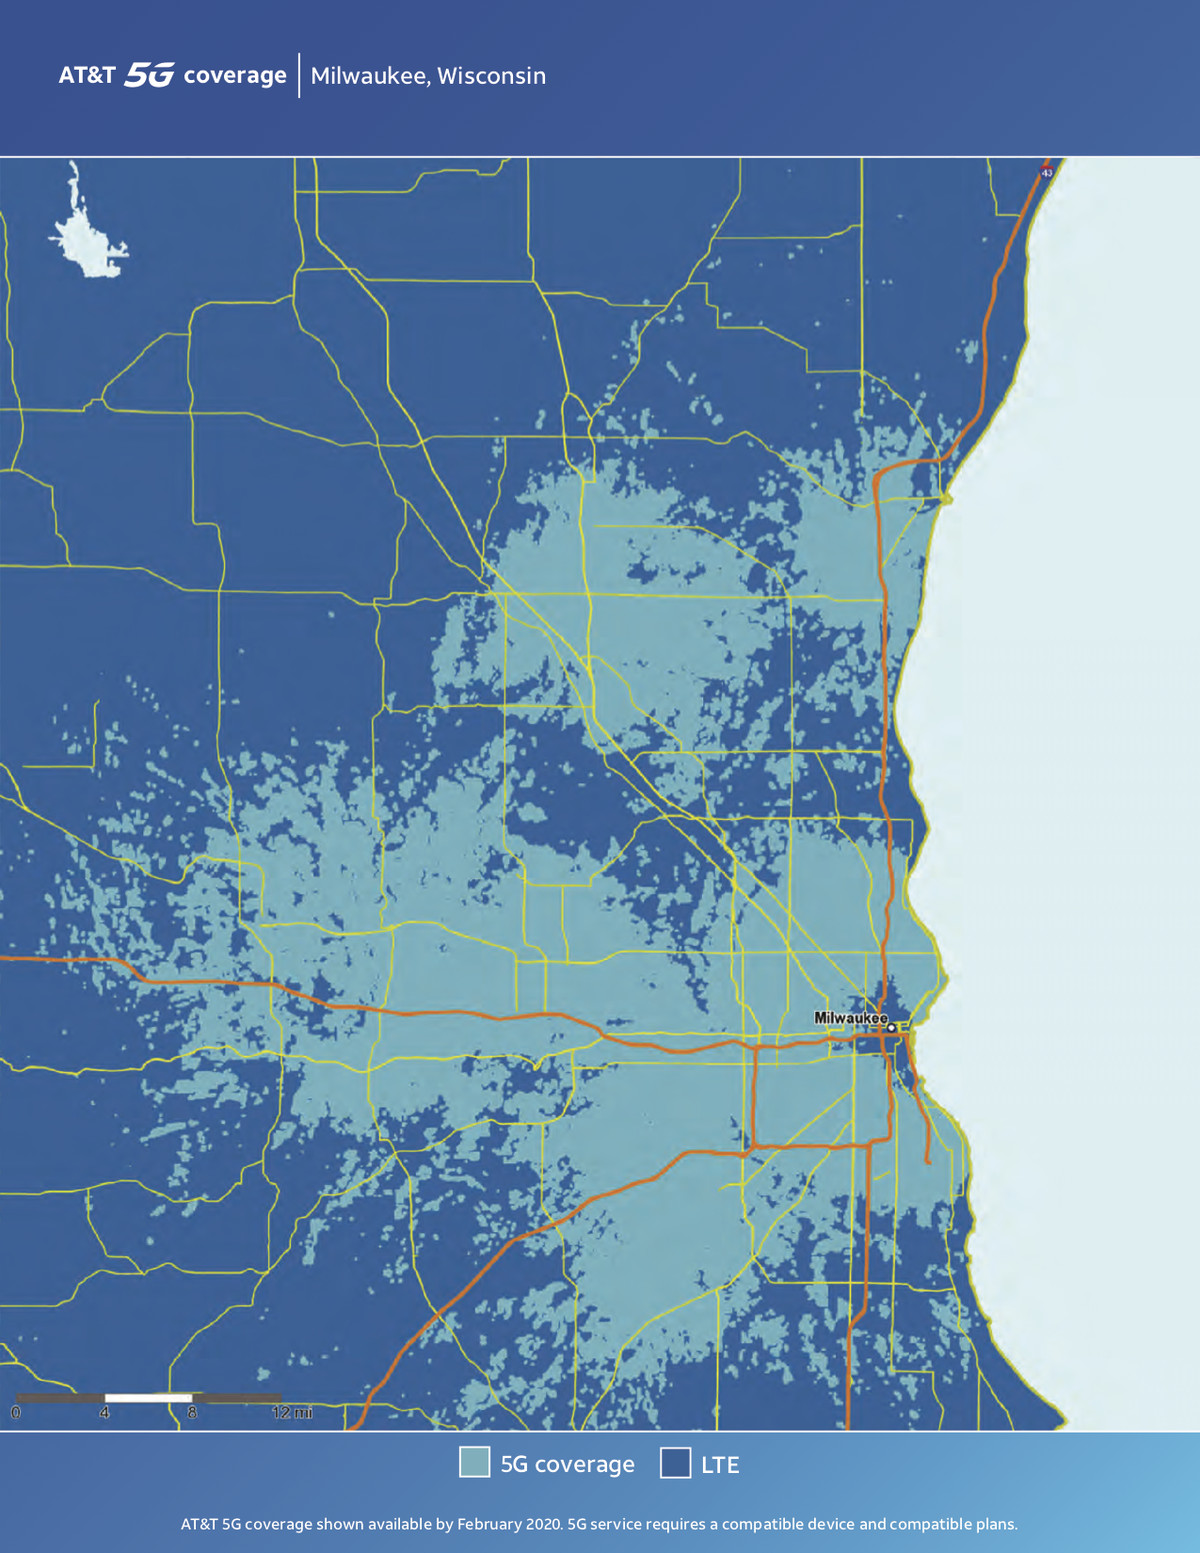 Here are AT&T's first real consumer 5G coverage maps - The Verge At T Coverage Map Wisconsin on at&t service map, at&t connectivity map wisconsin, economics distribution map wisconsin, at&t map tracker, at&t dsl availability map, at&t data map, at&t u-verse, cell phone coverage wisconsin, sprint coverage wisconsin,